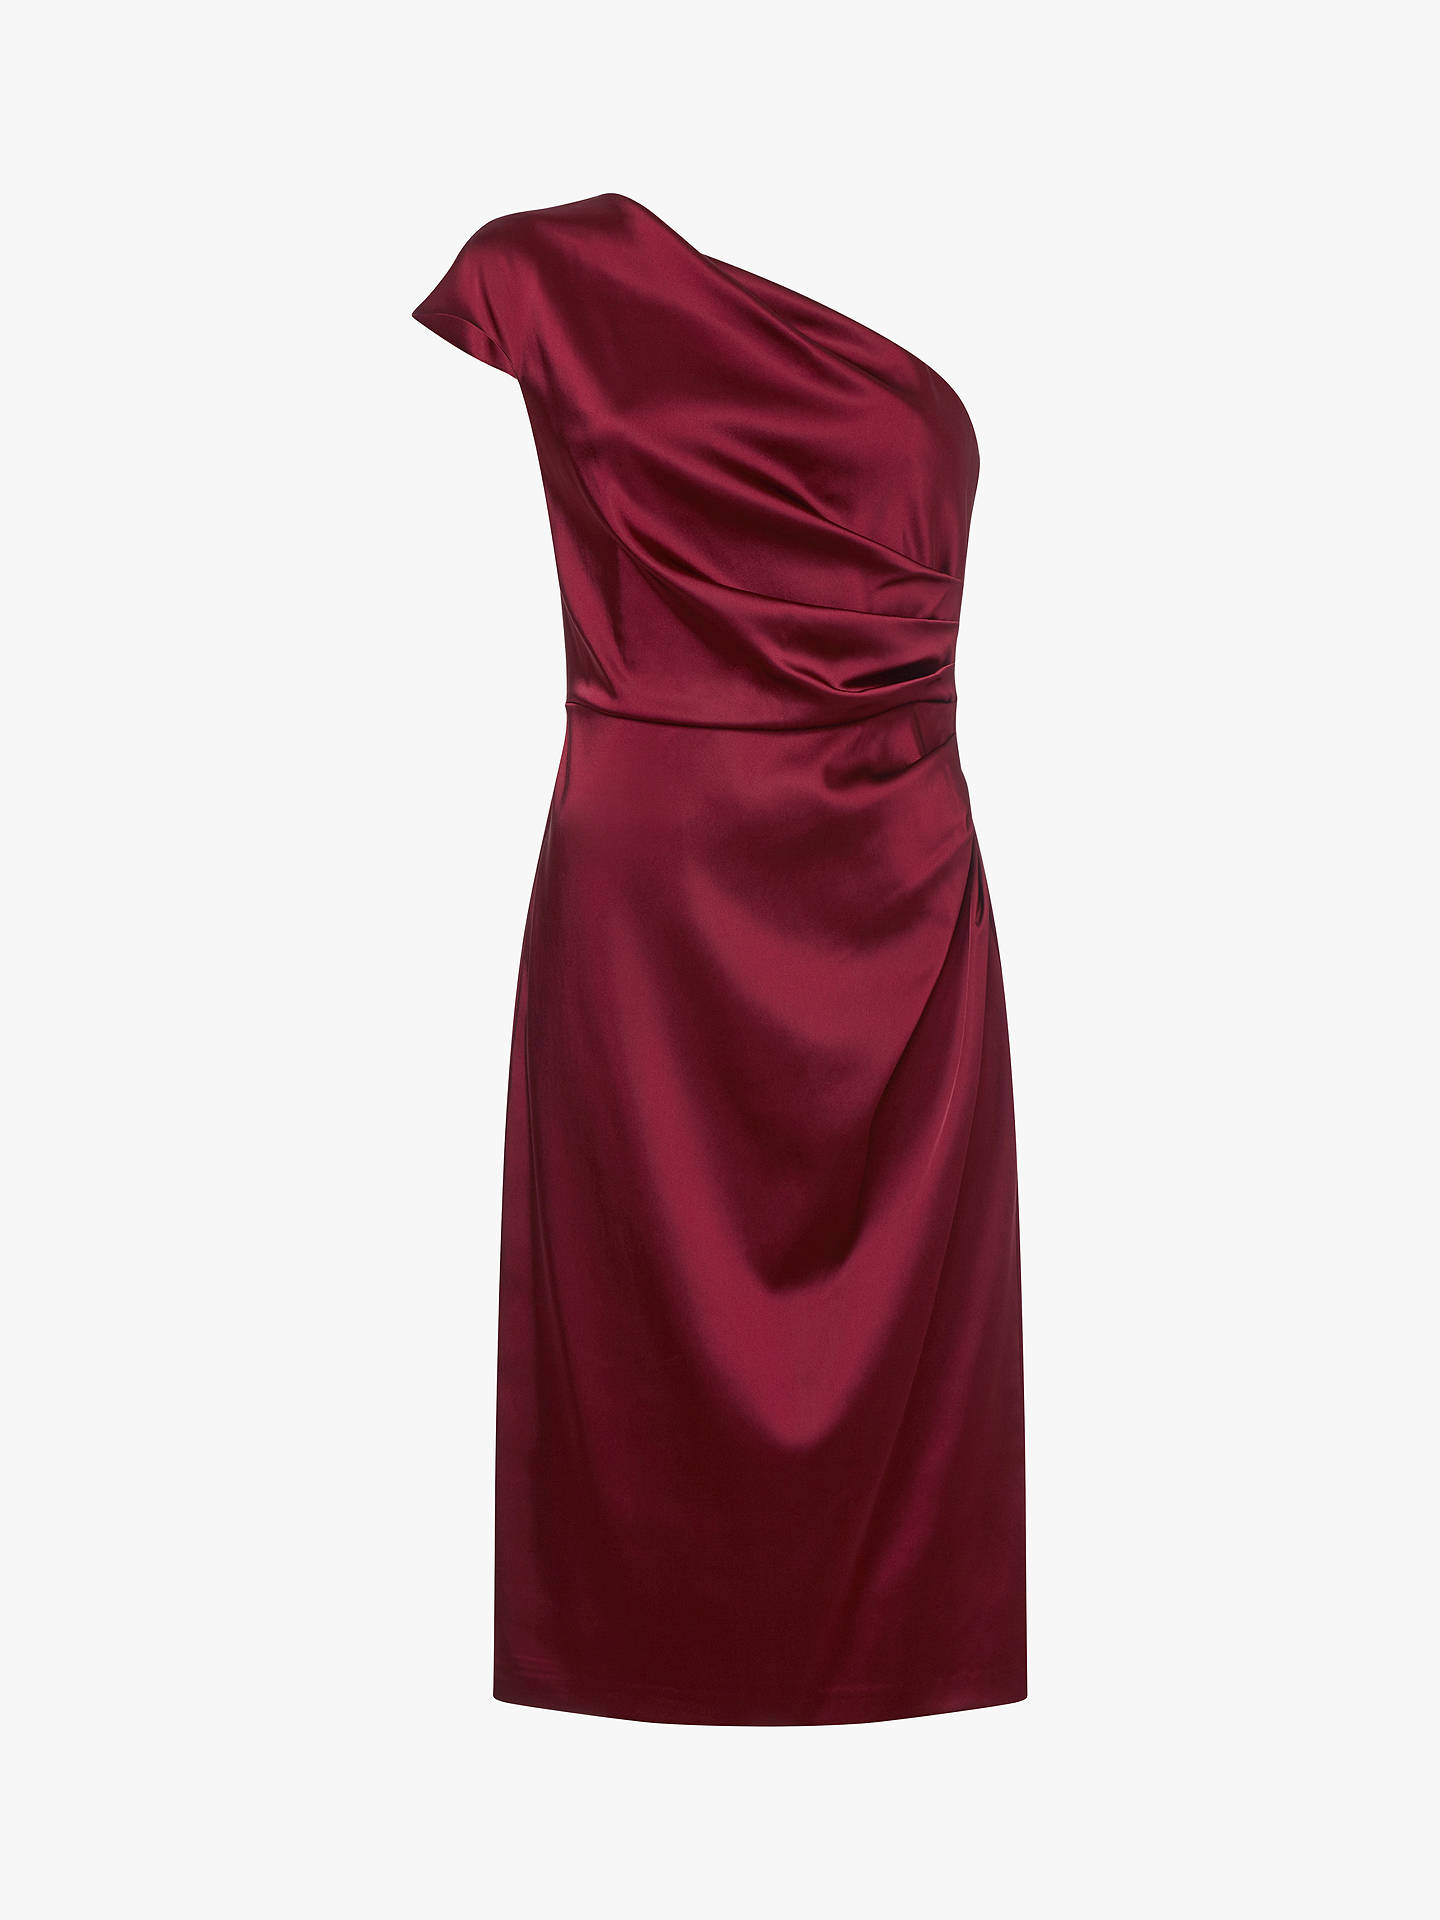 BuyAdrianna Papell Stretch Satin One Shoulder Dress, Garnet, 8 Online at johnlewis.com